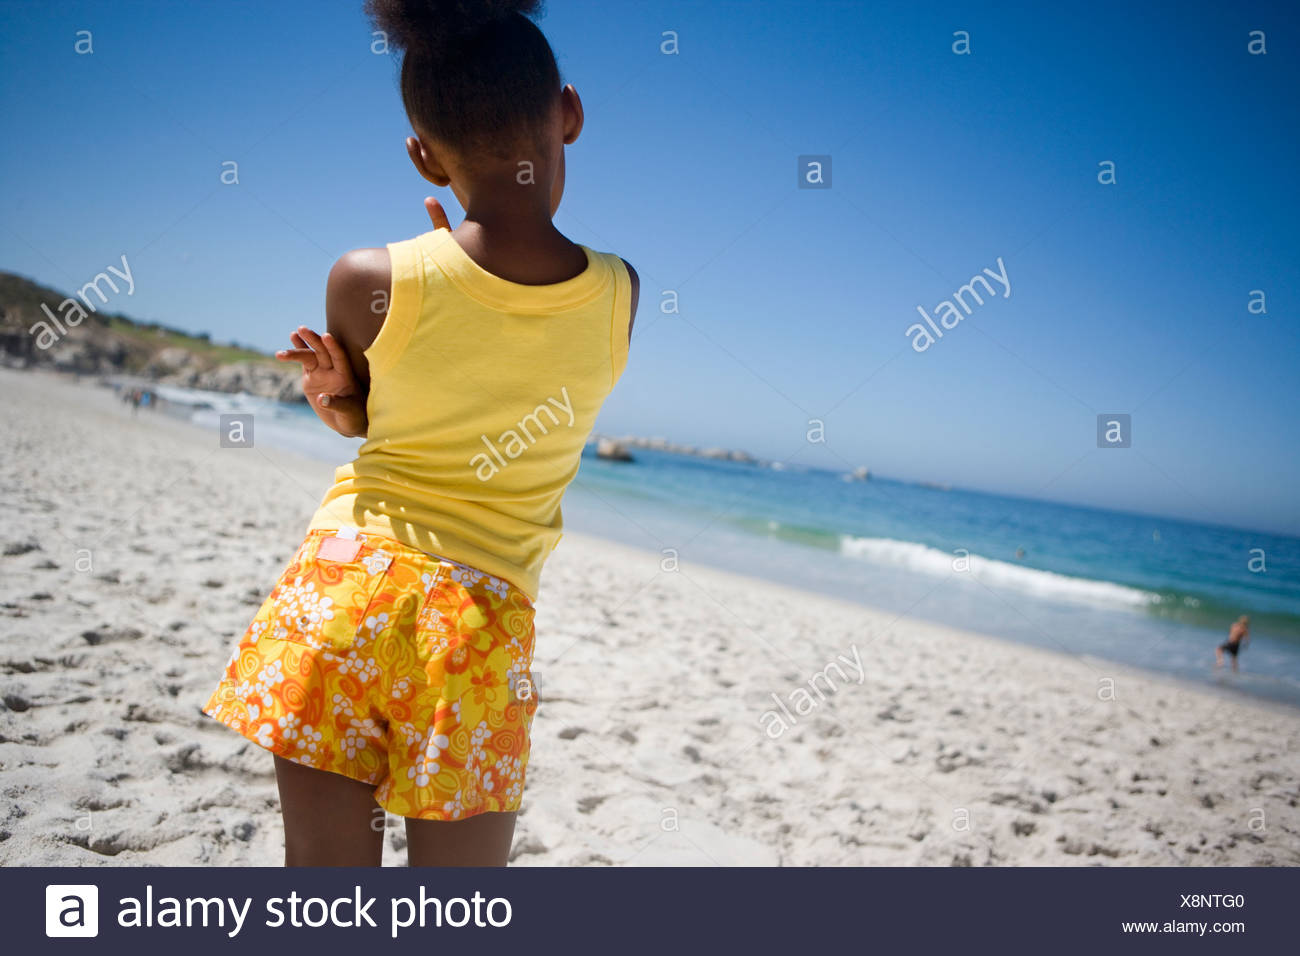 Girl 9 11 in yellow vest and shorts standing on beach looking at sea rear view tilt - Stock Image